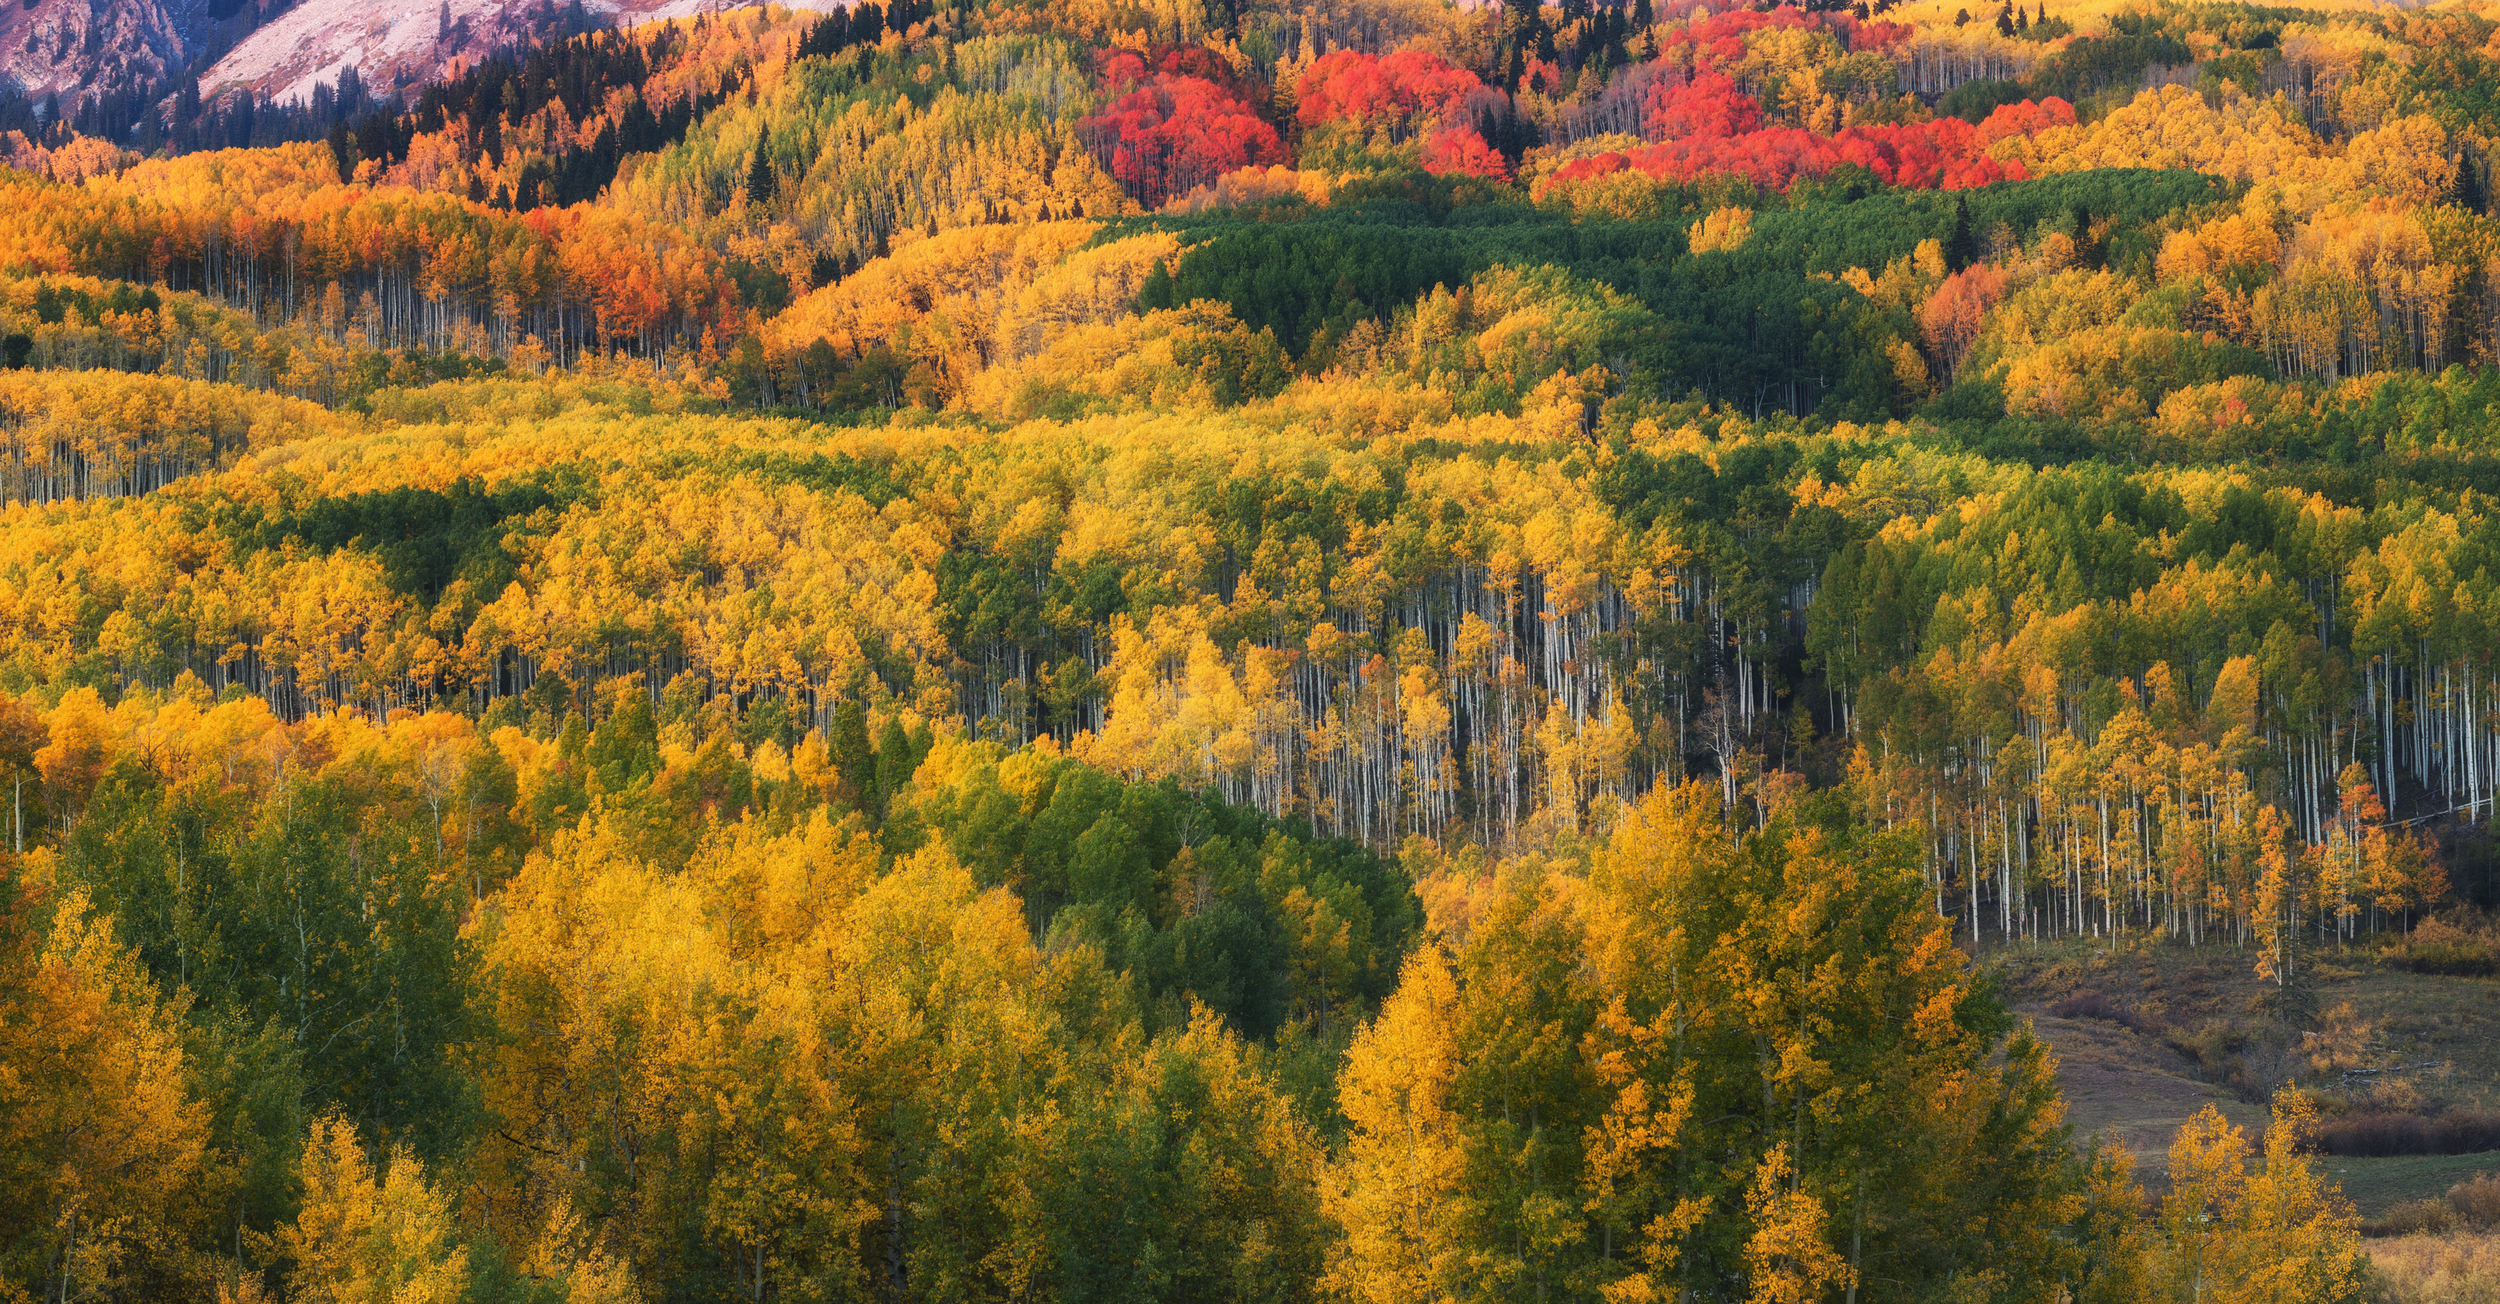 A telephoto image of the aspen trees along Kebler Pass near Crested Butte, Colorado as the peak of fall foliage nears.If you're looking for a photography tour of the West Elk Mountains during the fall, please visit my blog for more information. http://www.ryanwrightphotoblog.com/kebler-pass-aspens/